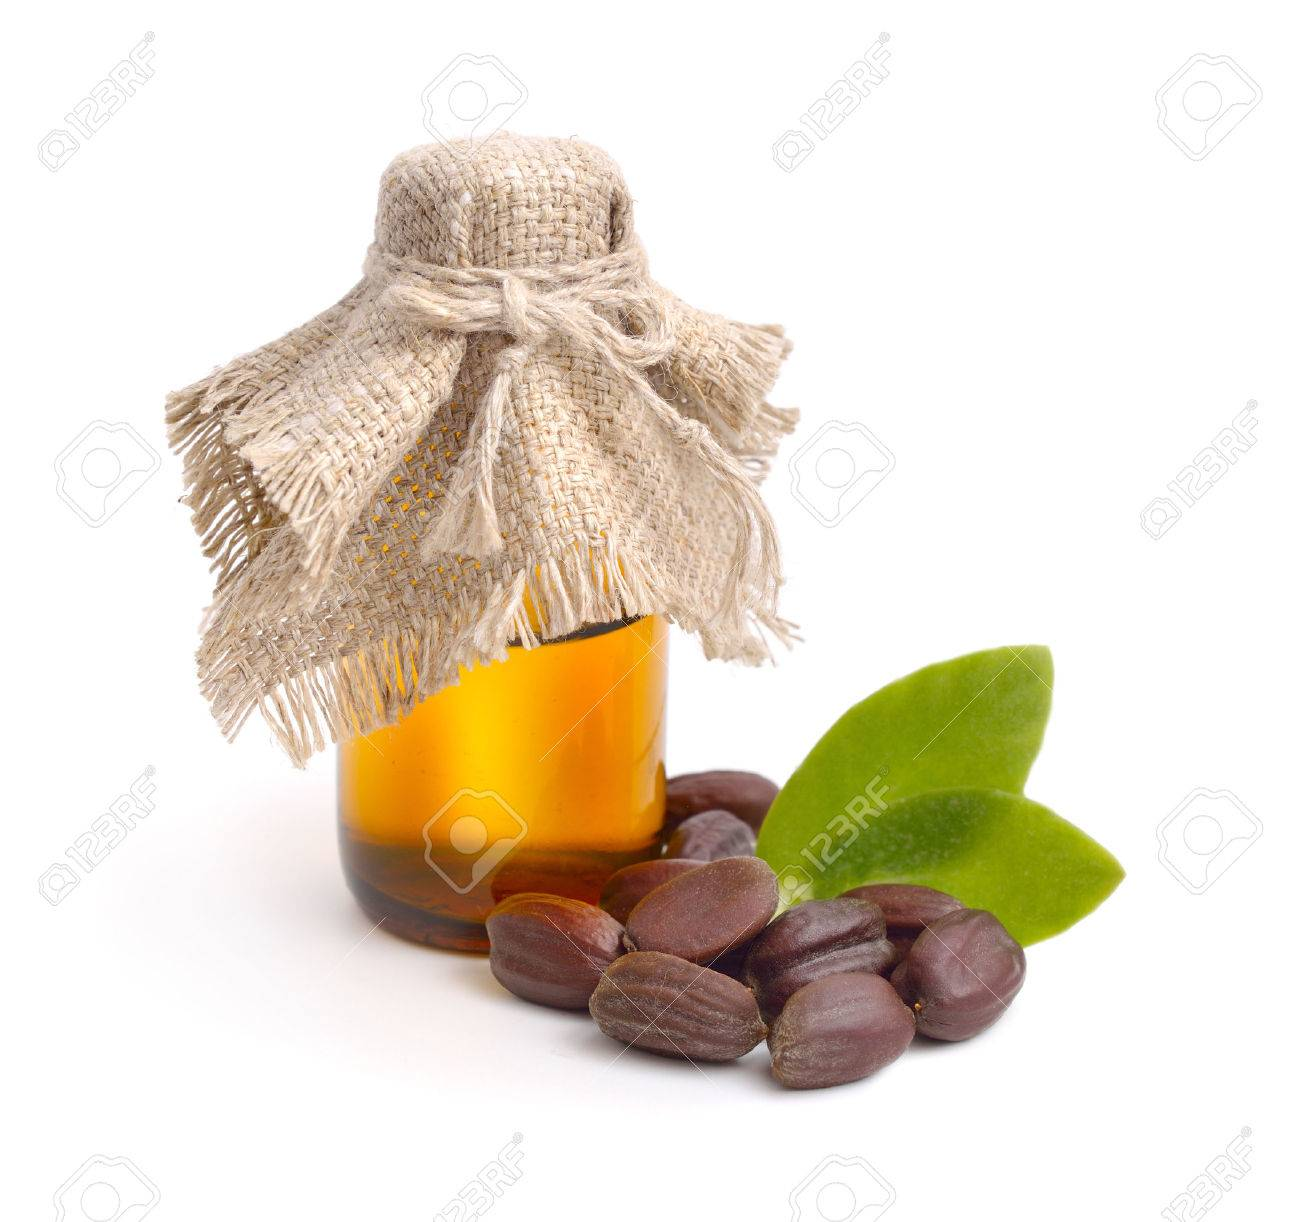 Jojoba (Simmondsia chinensis) leaves, seeds with oil. Isolated on withe beckground. - 47606765